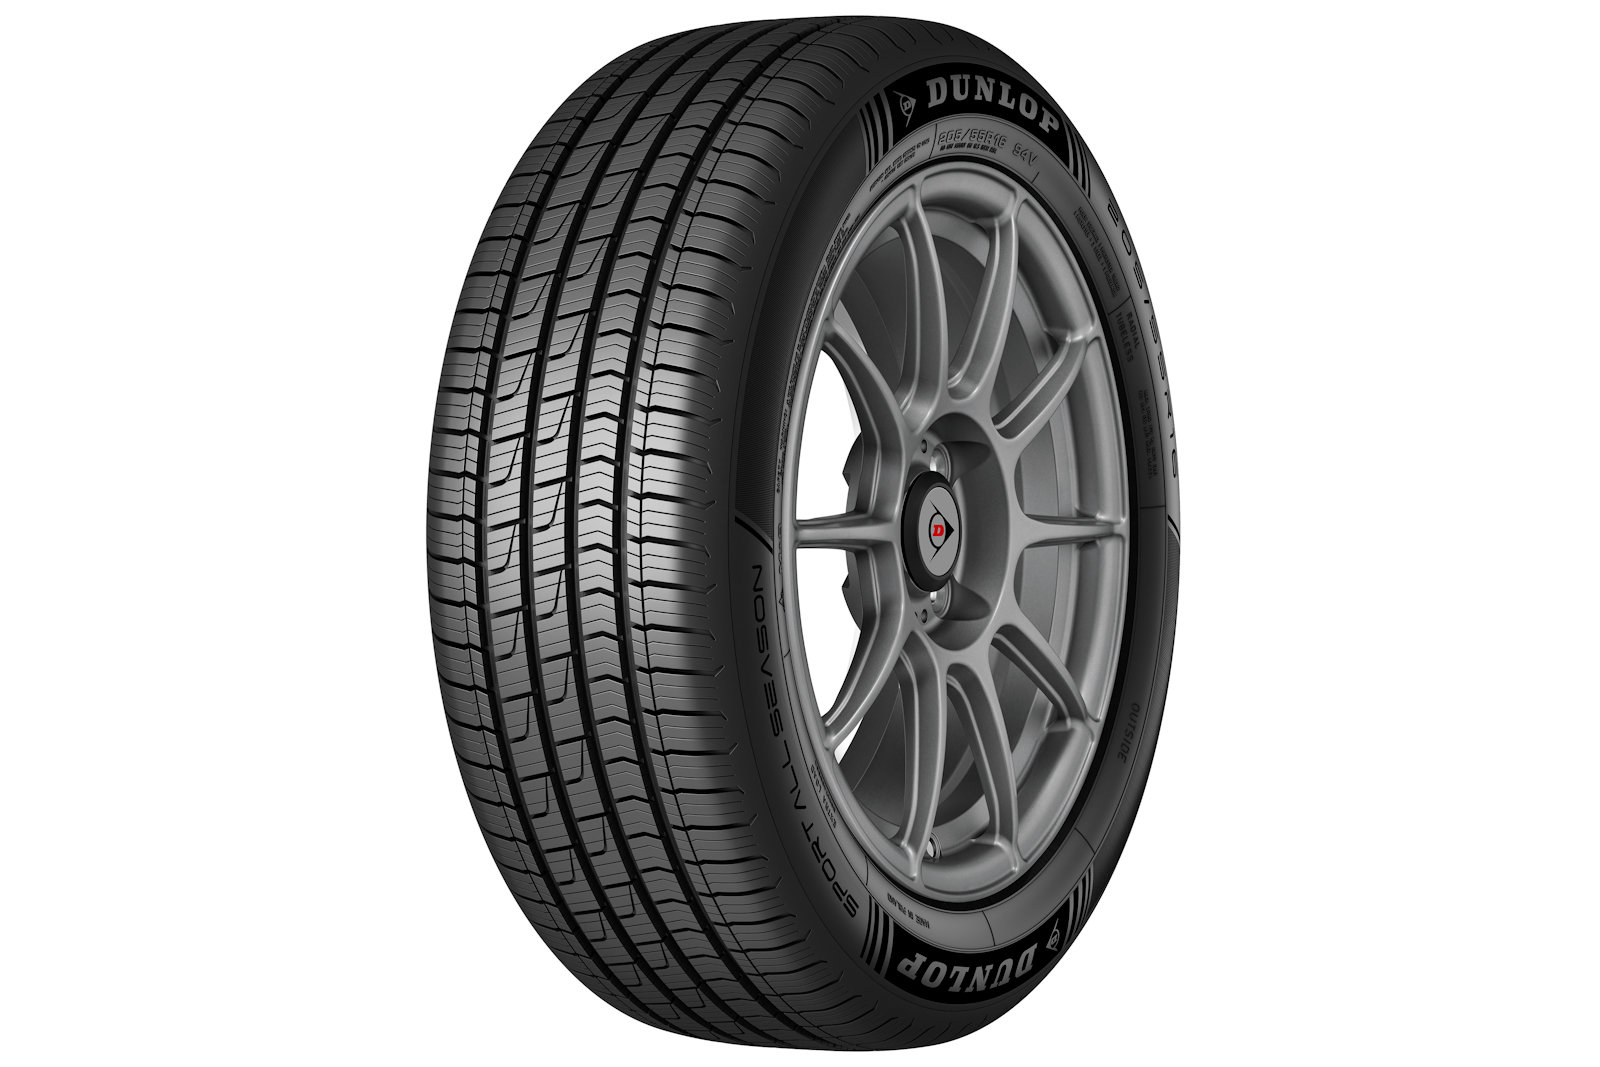 Gomme Nuove Dunlop 185/60 R14 82H SPALLSEASON M+S pneumatici nuovi All Season